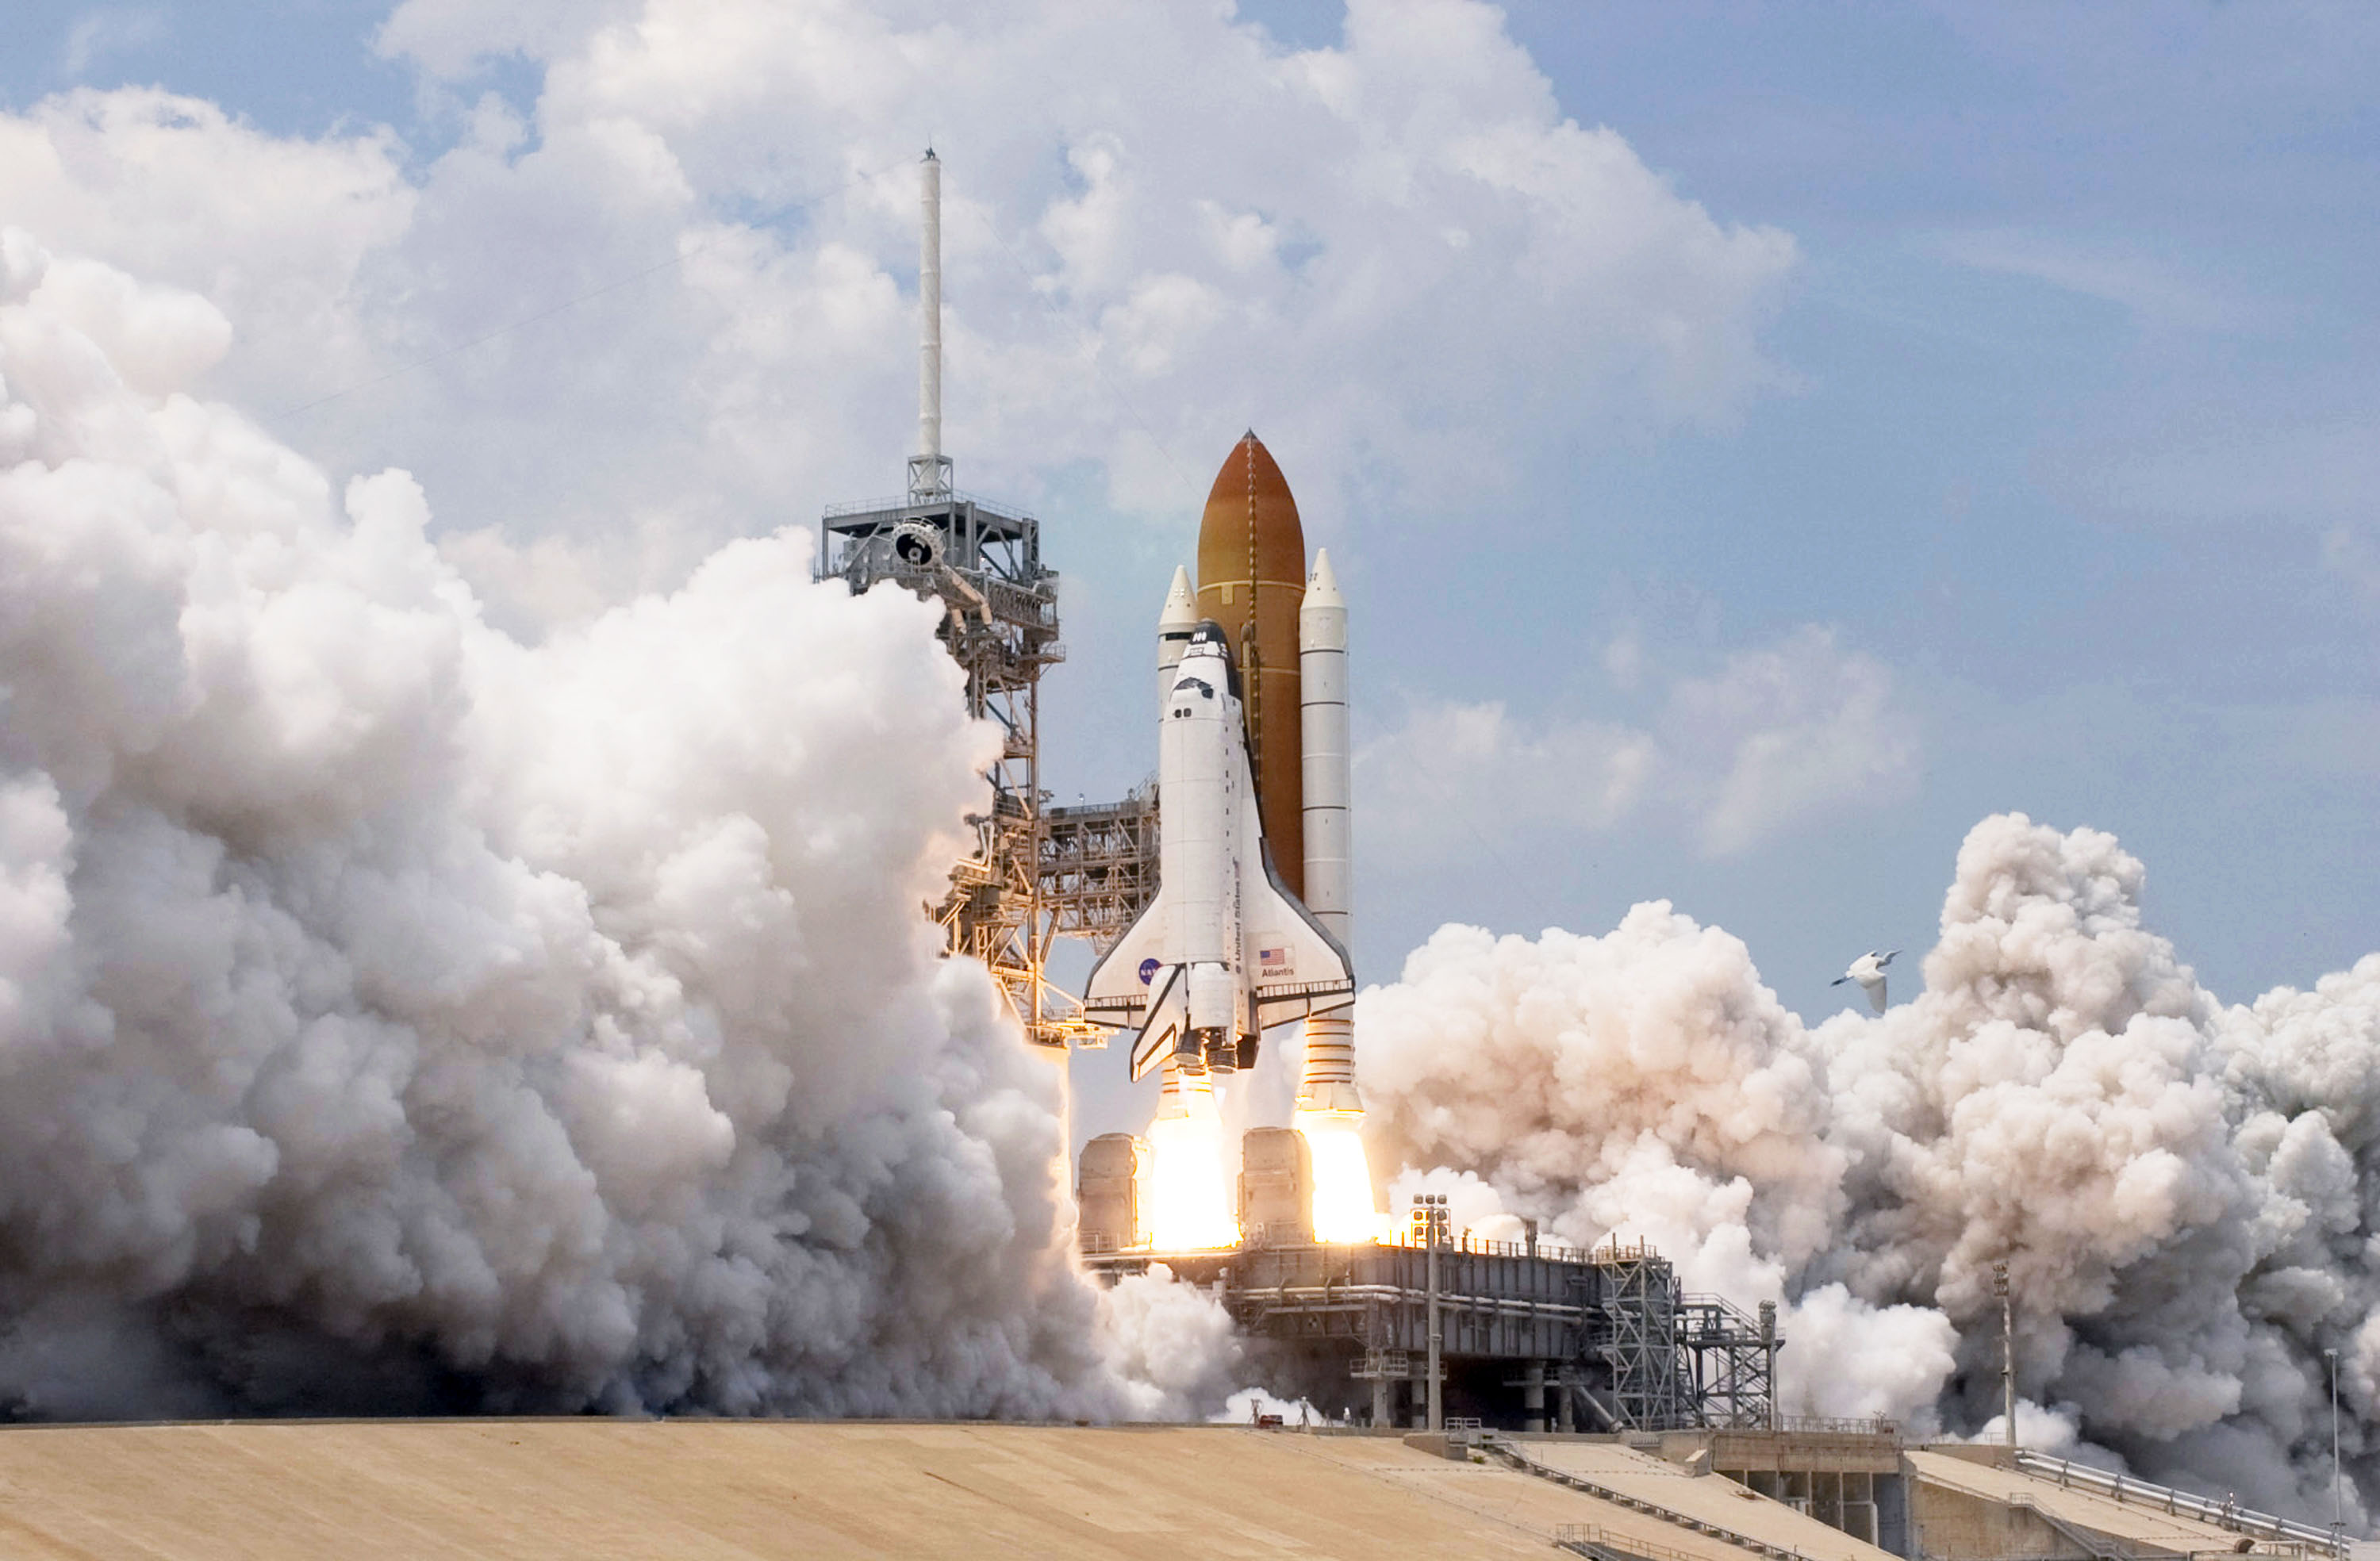 space shuttle with rocket - photo #20